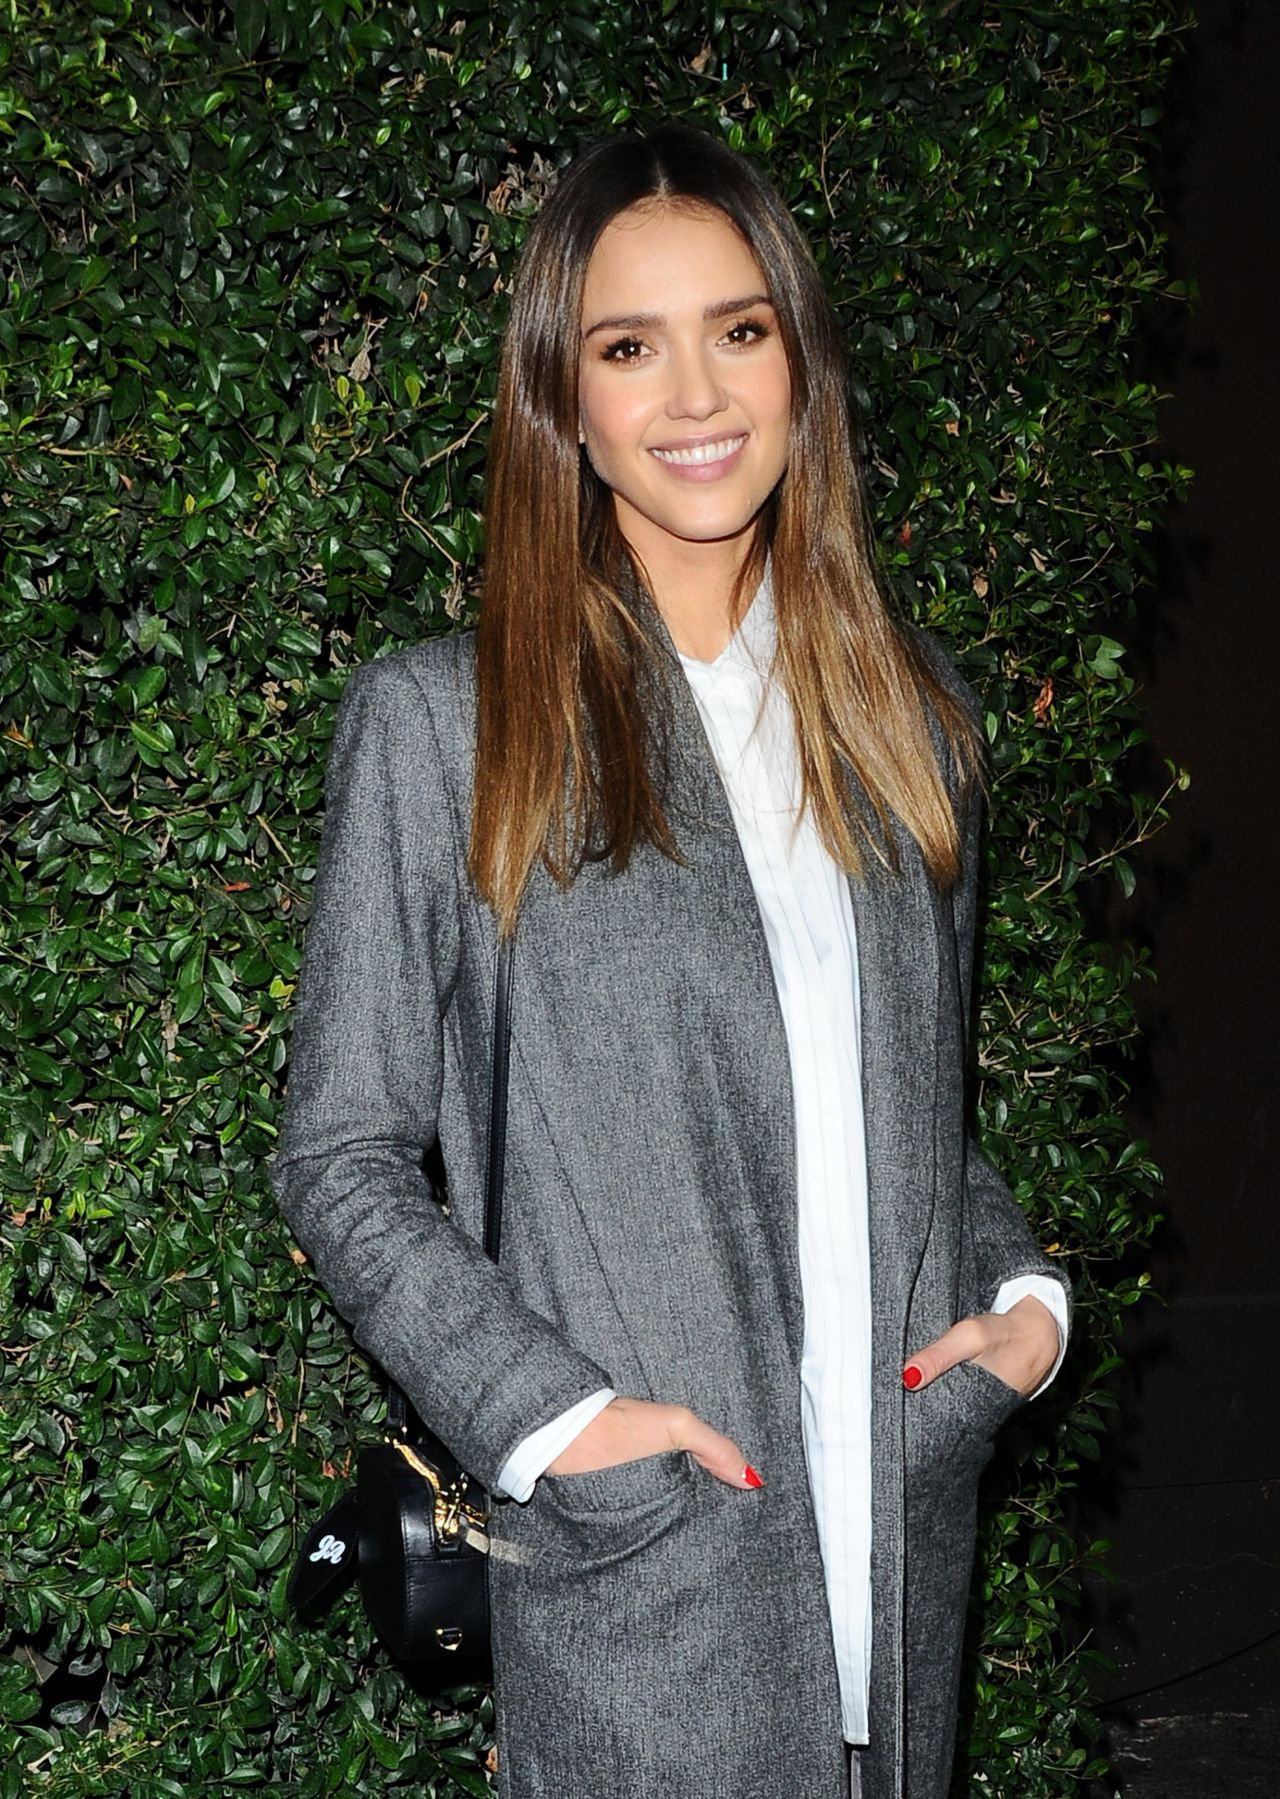 http://celebmafia.com/wp-content/uploads/2016/11/jessica-alba-who-what-wear-10th-anniversary-in-los-angeles-11-2-2016-18.jpg